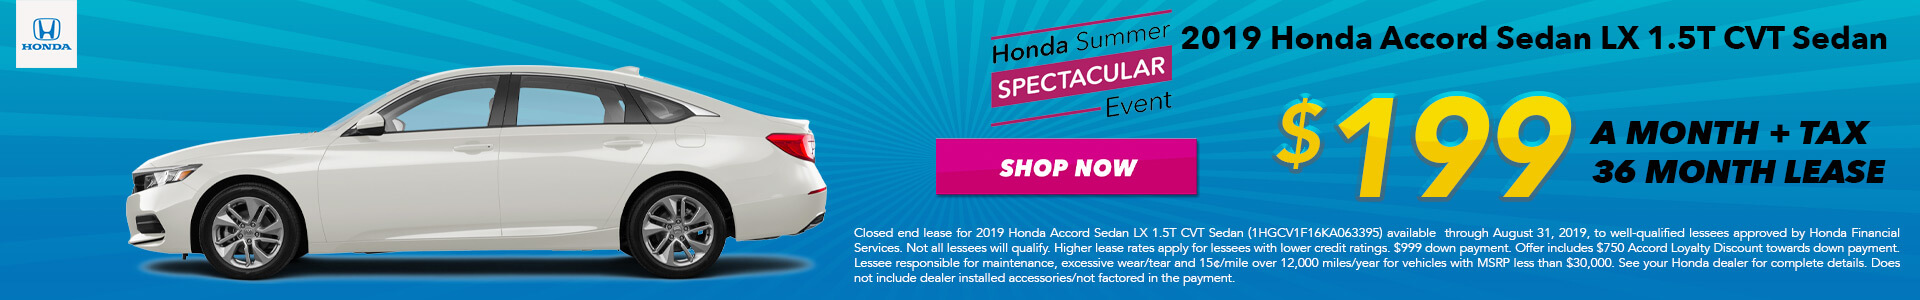 2019 Honda Accord LX Lease for $199